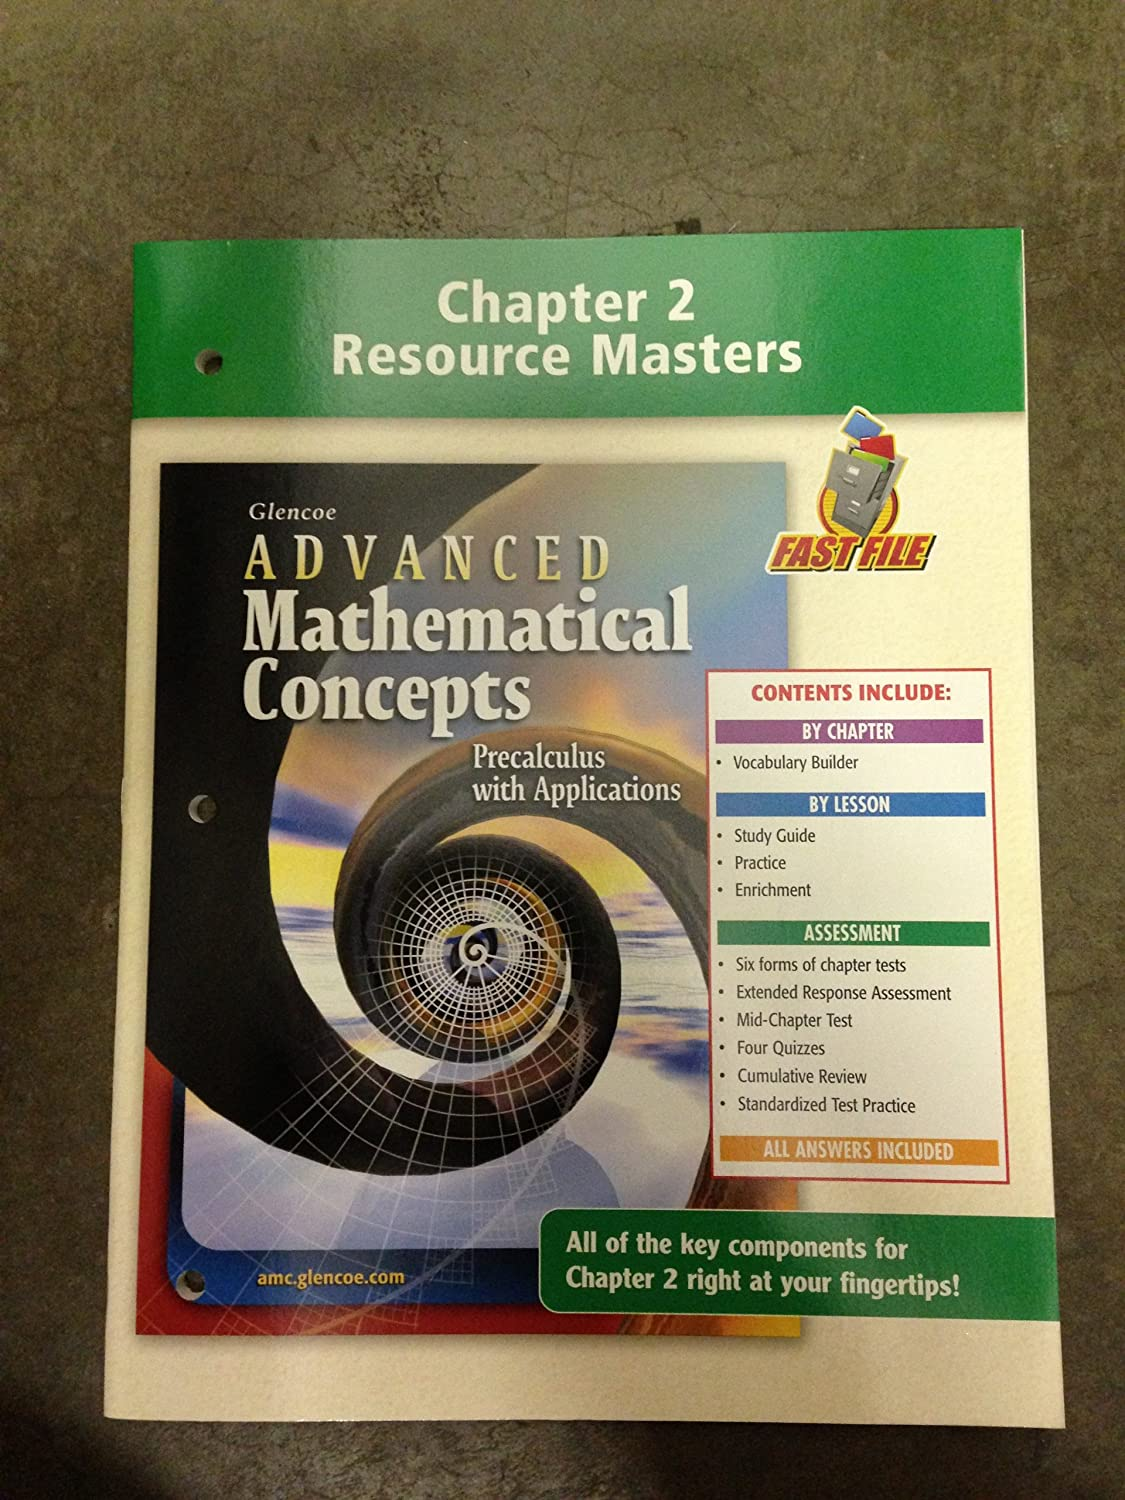 Chapter 2 Resource Masters Book to Accompan Glencoe's Advanced Mathematical  Concepts: Precalculus with Applications: Amazon.co.uk: Office Products